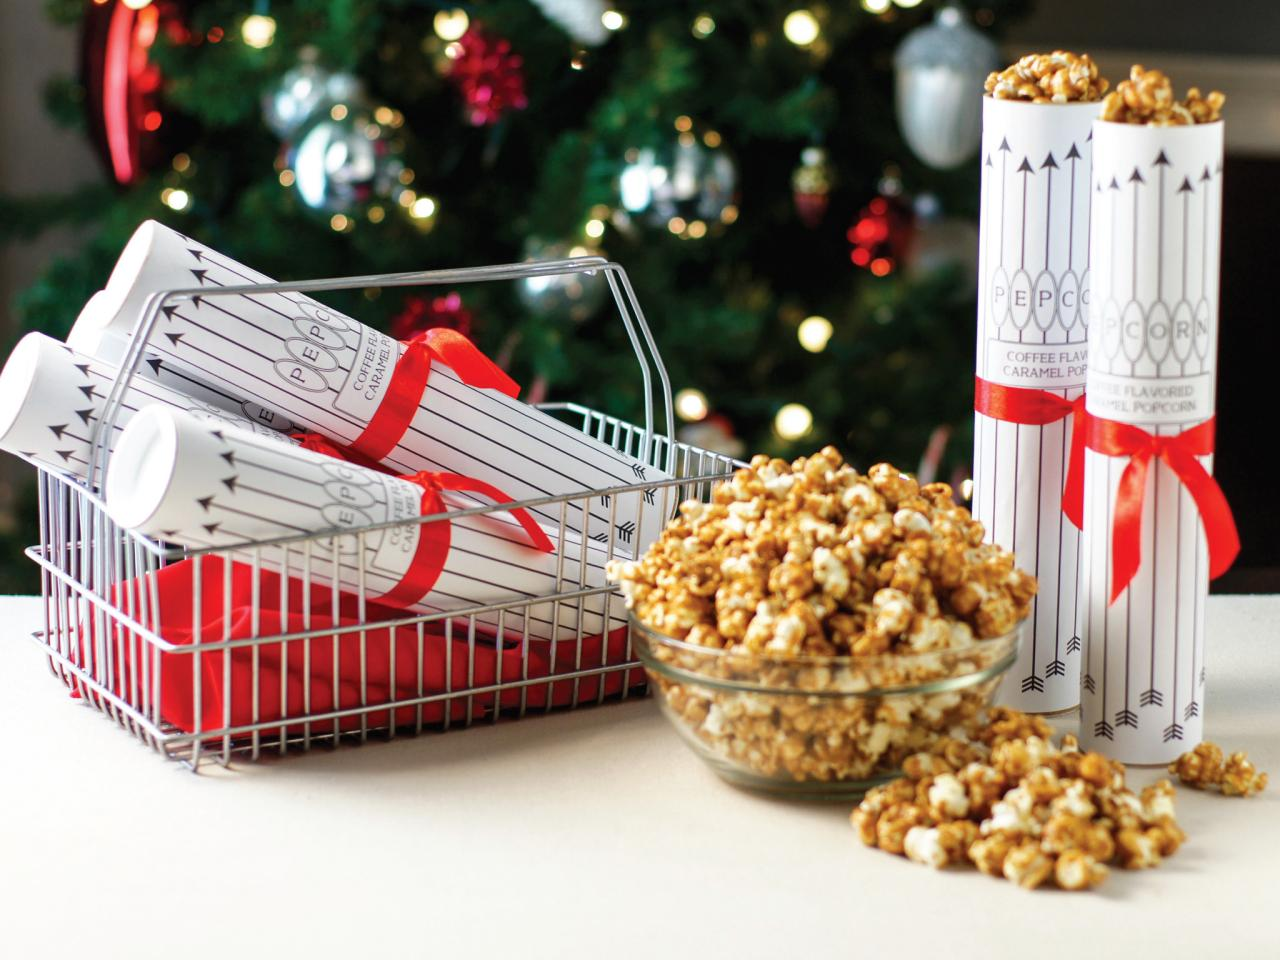 Holiday food gift coffee caramel corn recipe hgtv homemade coffee and caramel popcorn in holiday wrapping give crunchy forumfinder Images